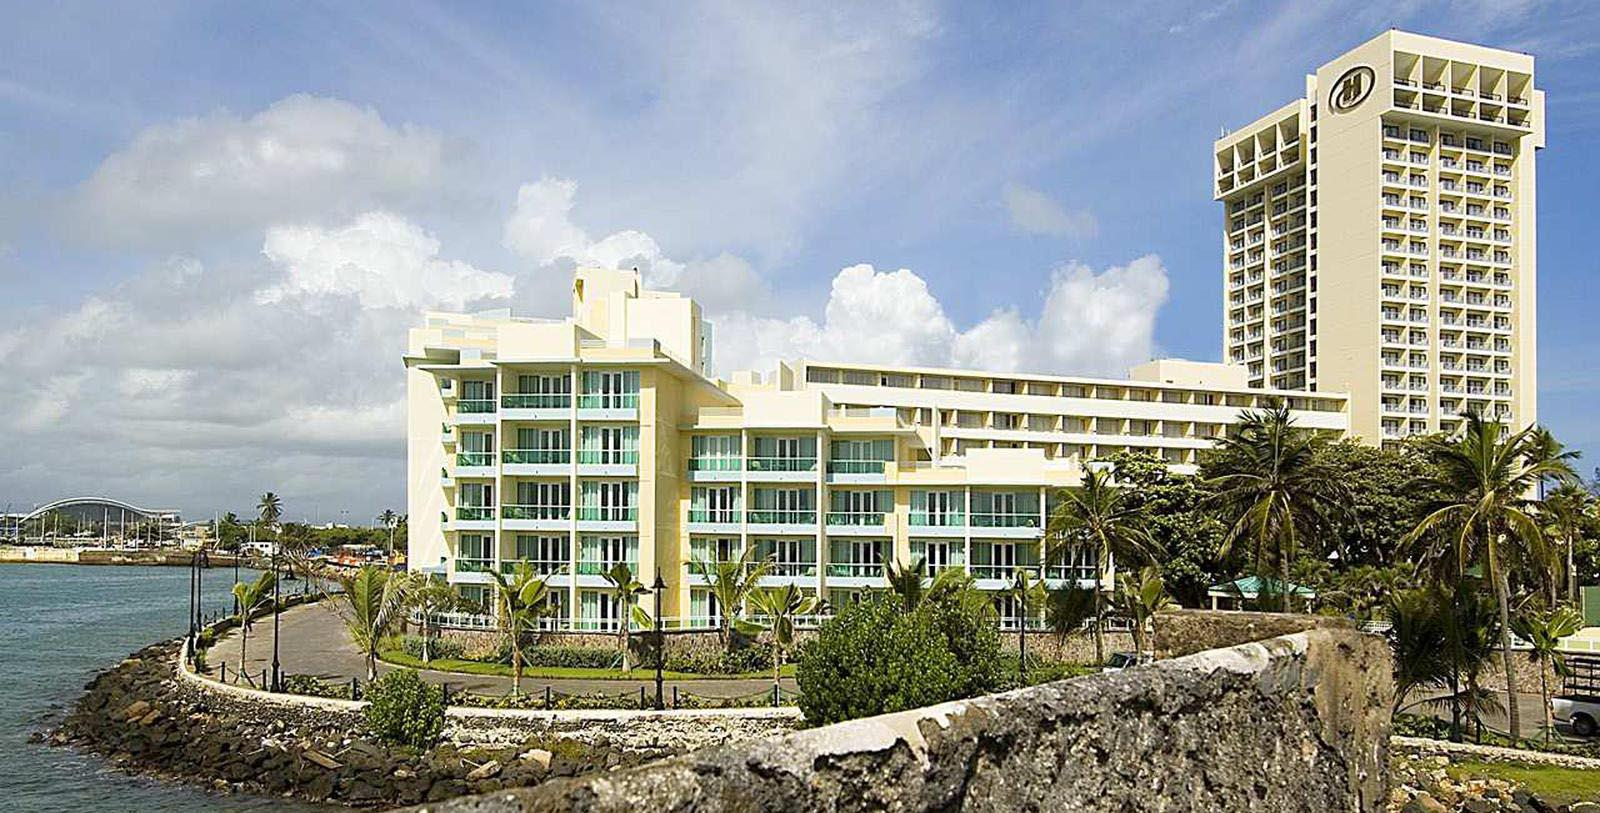 Image of Hotel Exterior at Caribe Hilton, 1949, Member of Historic Hotels of America, in San Juan, Puerto Rico, Special Offers, Discounted Rates, Families, Romantic Escape, Honeymoons, Anniversaries, Reunions